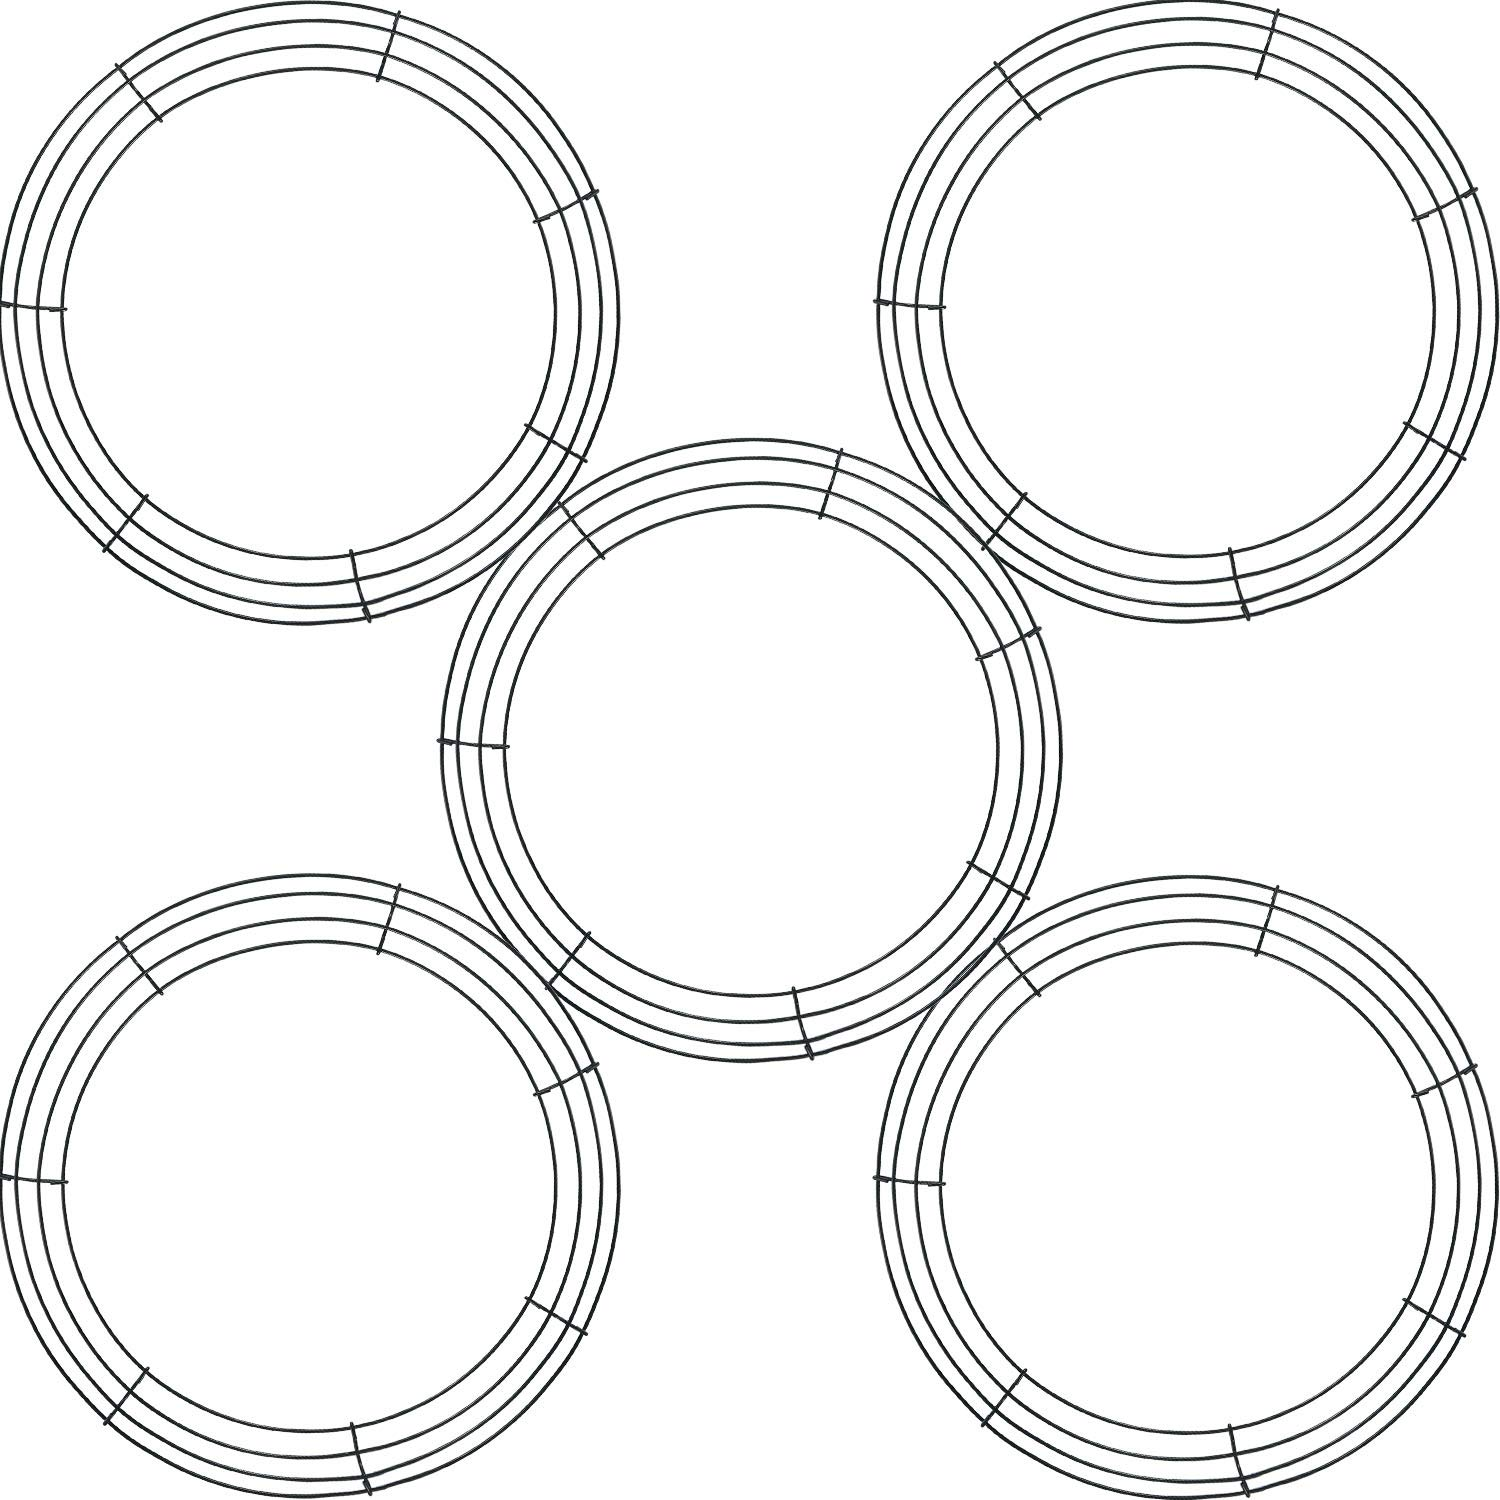 Details about 5 Pieces Metal Wreath Frame Ring Round DIY Macrame Floral on